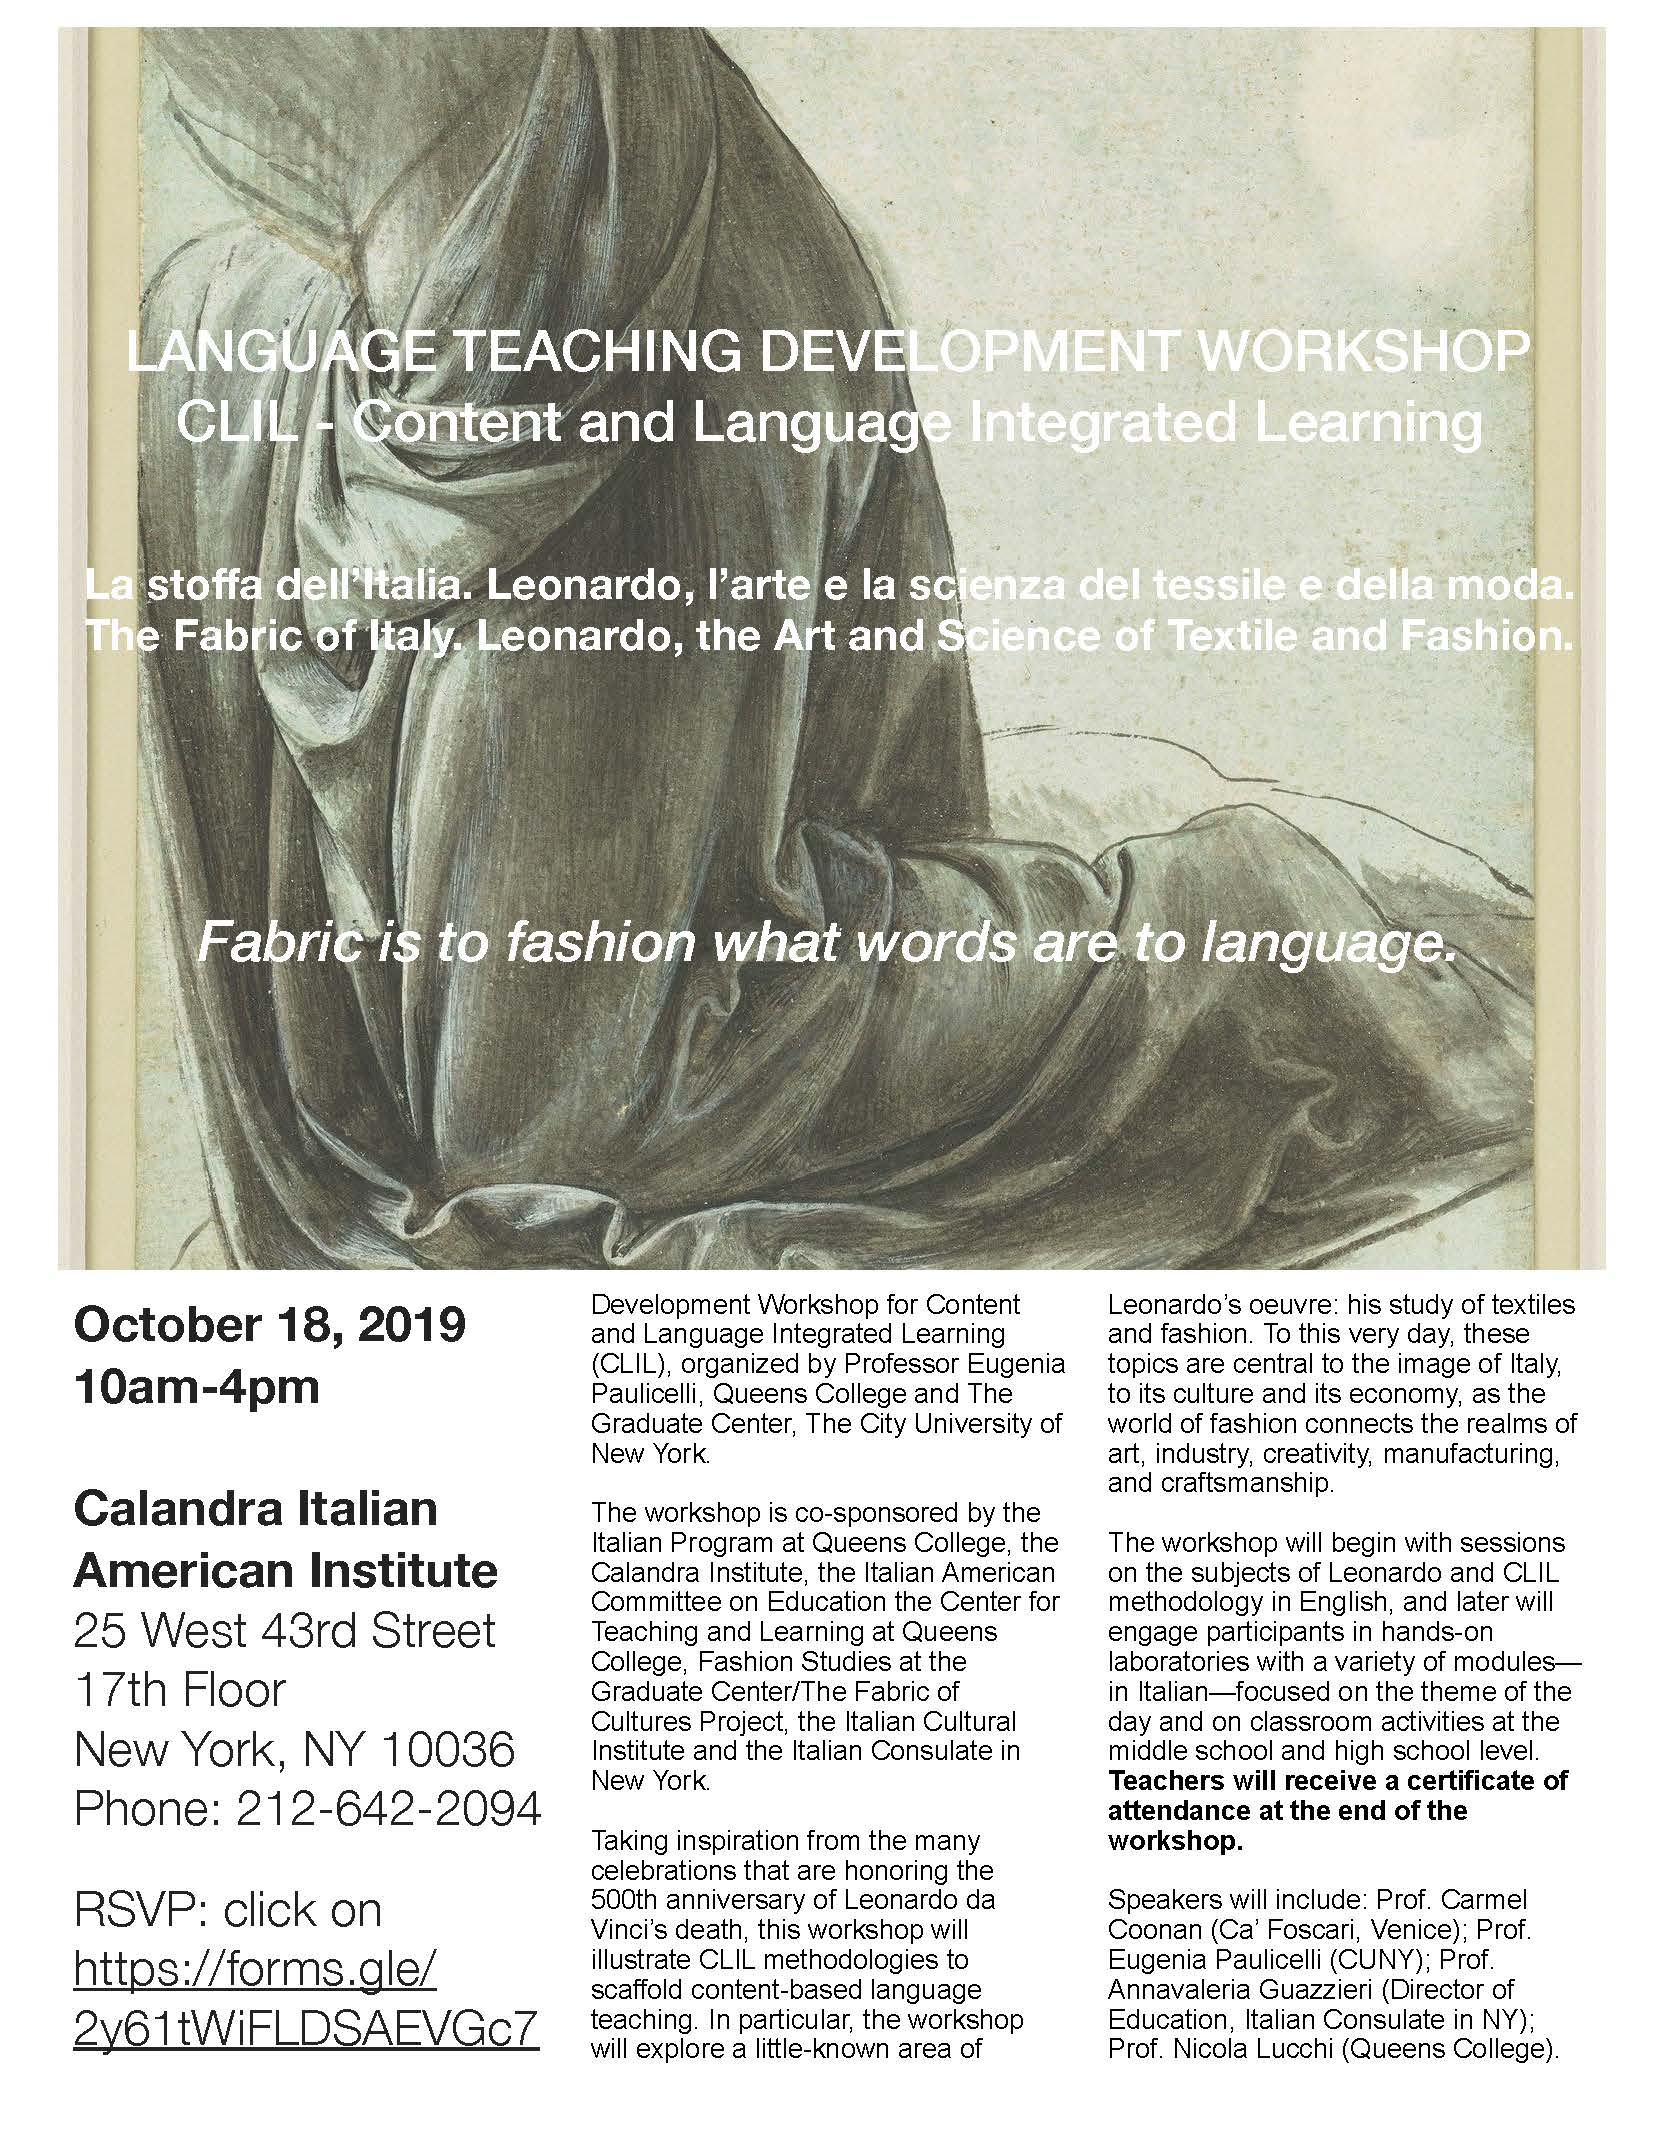 Language Teaching Development Workshop – Calandra Italian